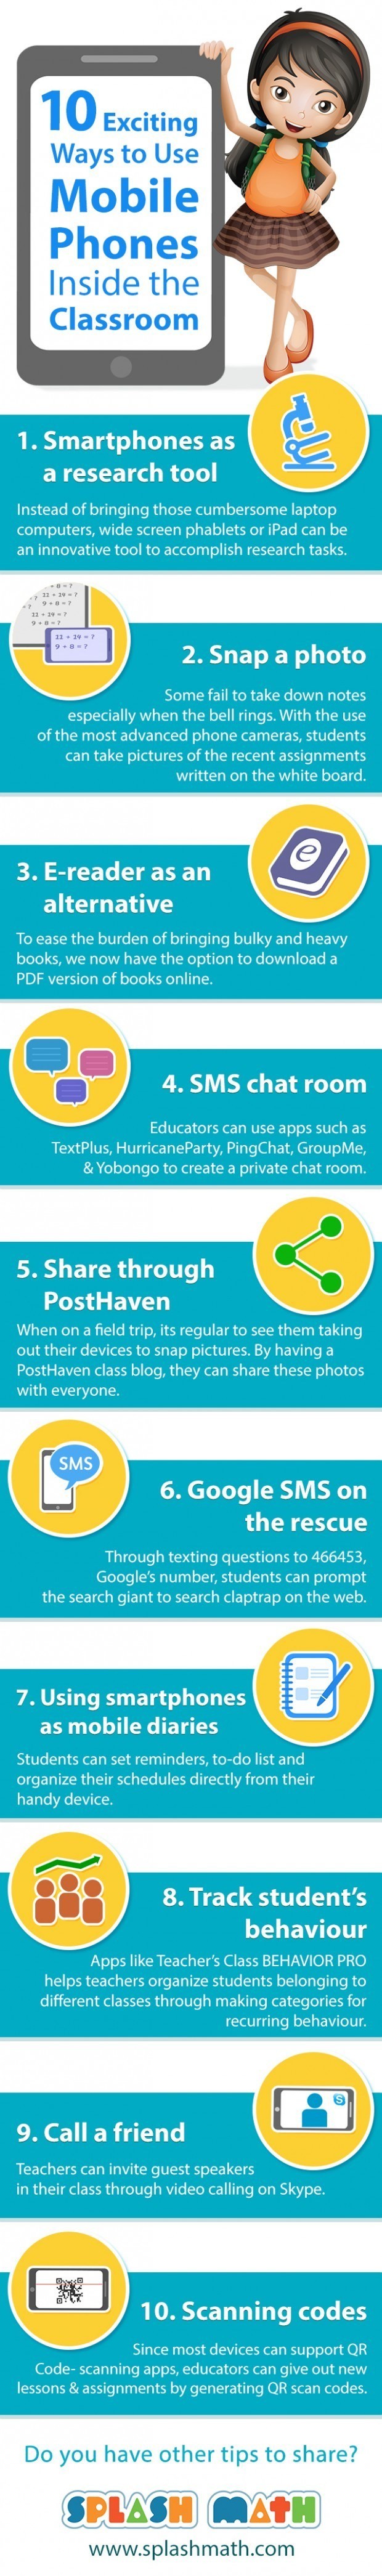 10 Exciting Ways to Use Mobile Phones In the Classroom Infographic